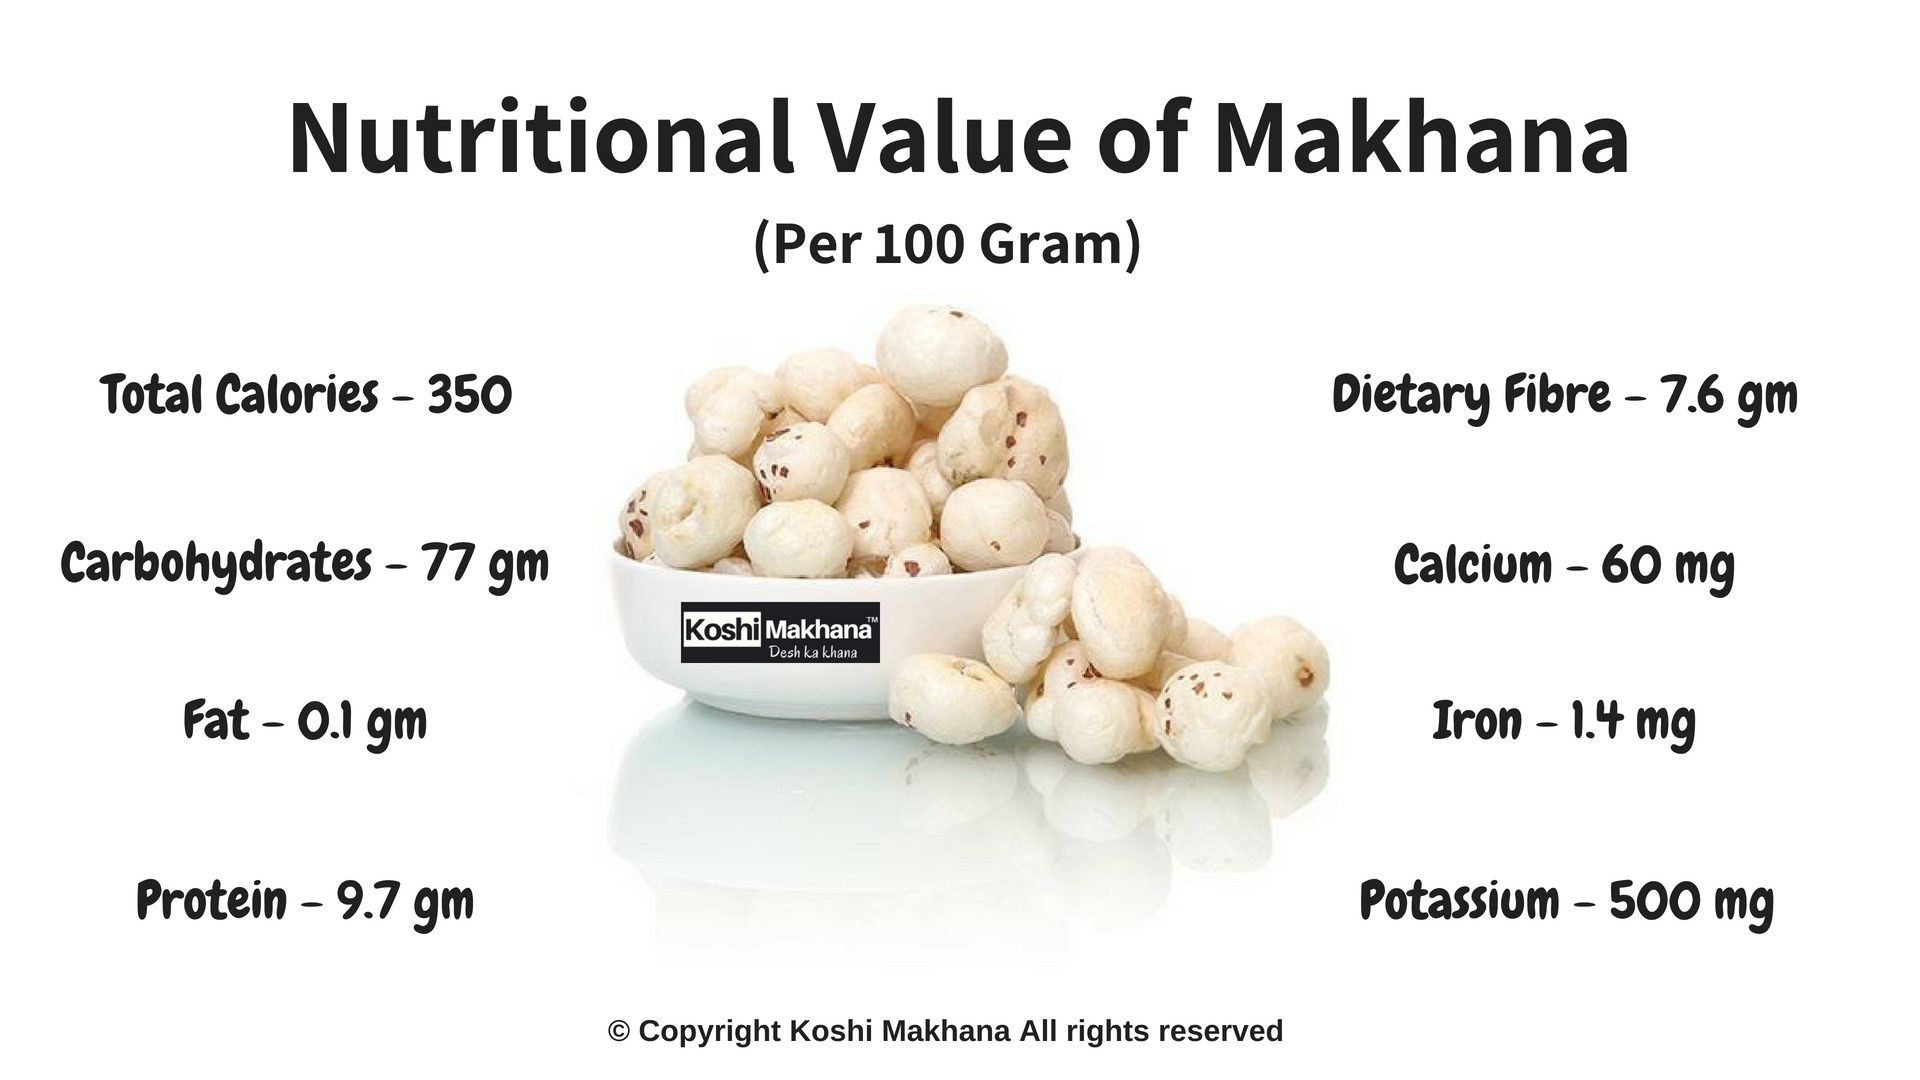 Nutritional Value of Makhana